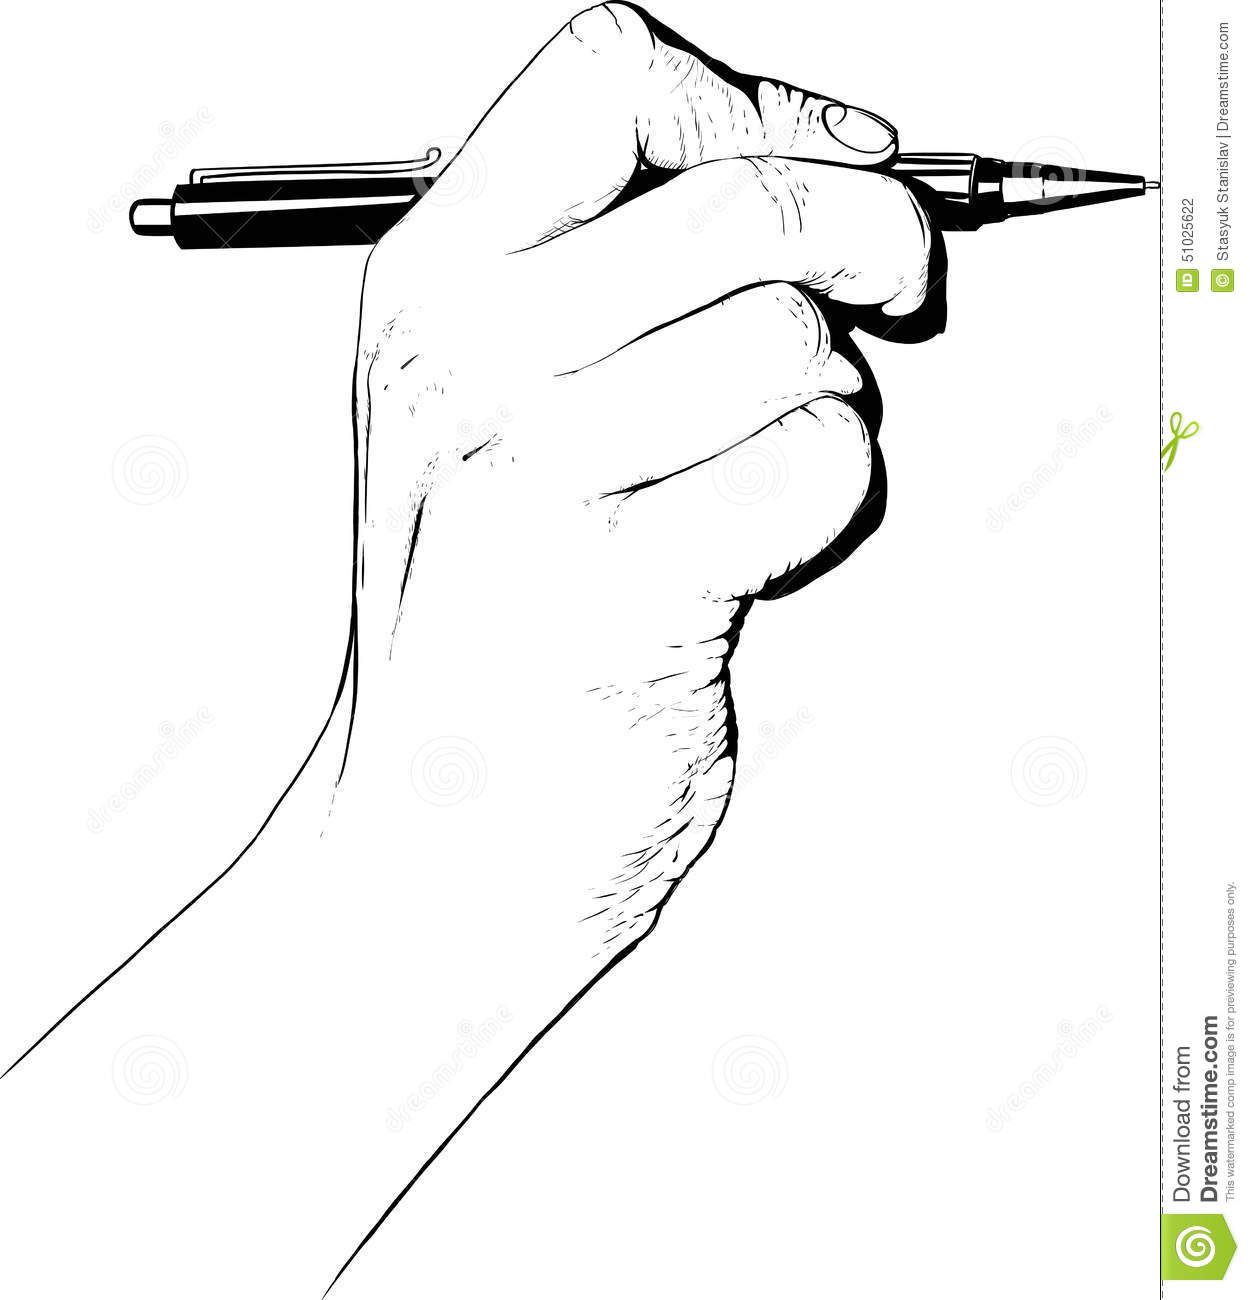 Drawing From the Shoulder vs. Drawing From the Wrist: Pros and Cons